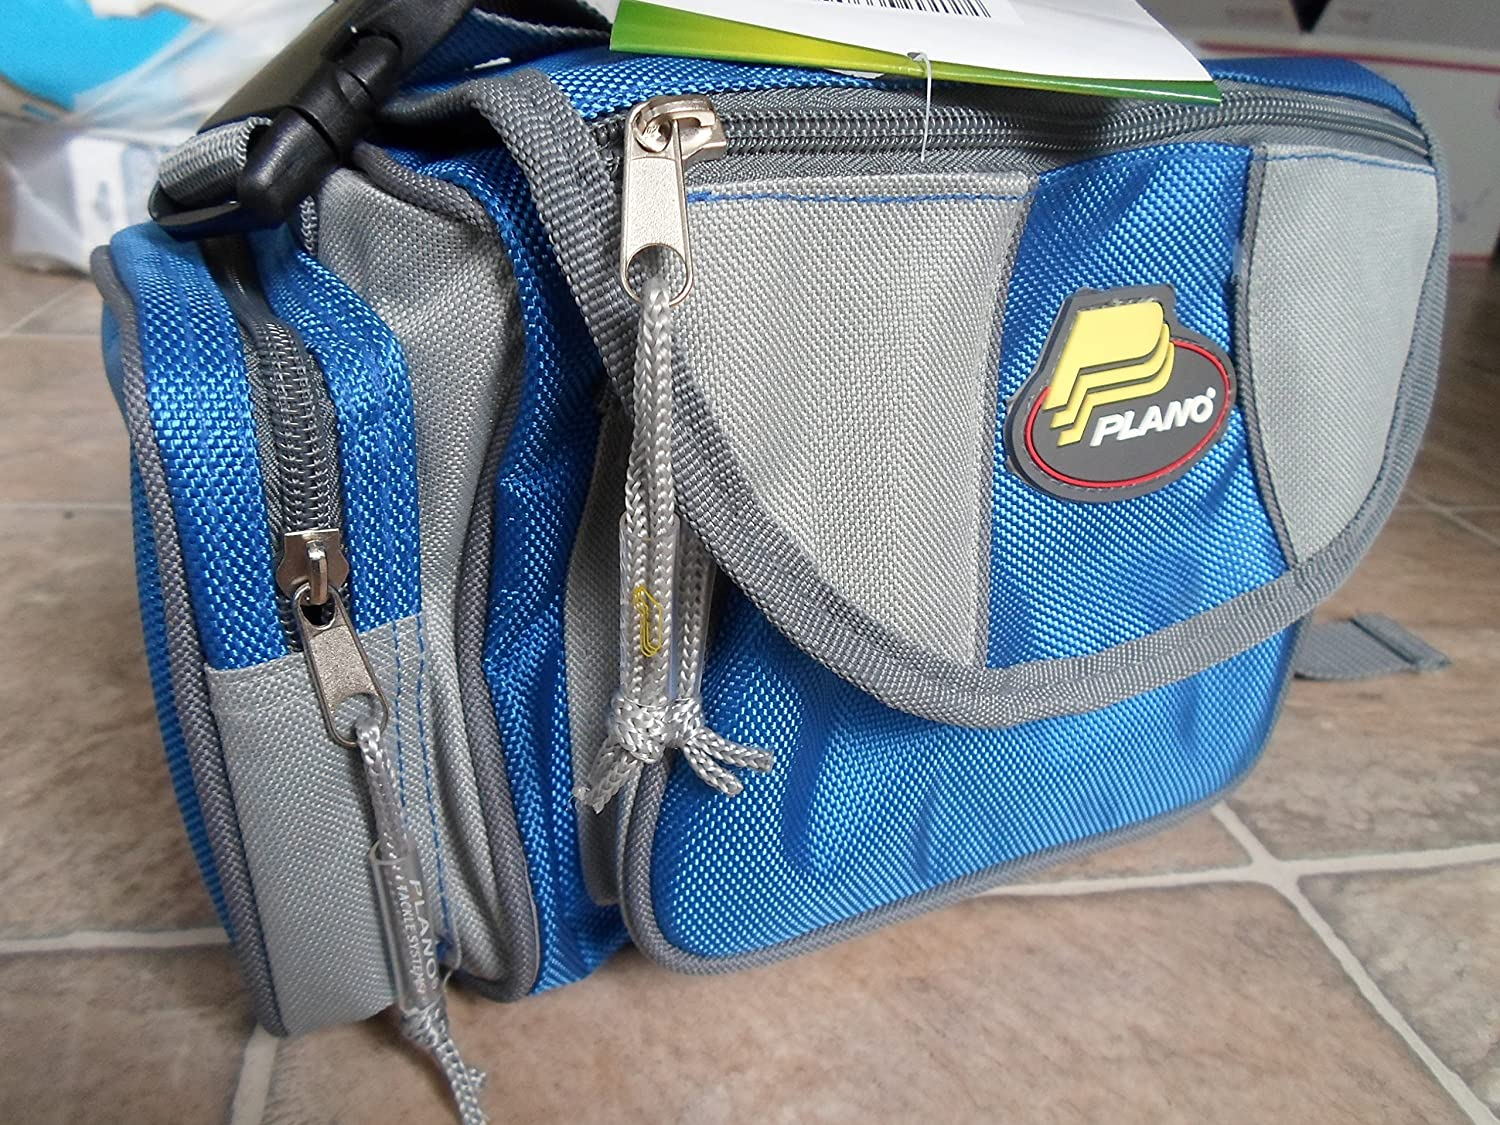 Plano® Guide Series Gear Bag